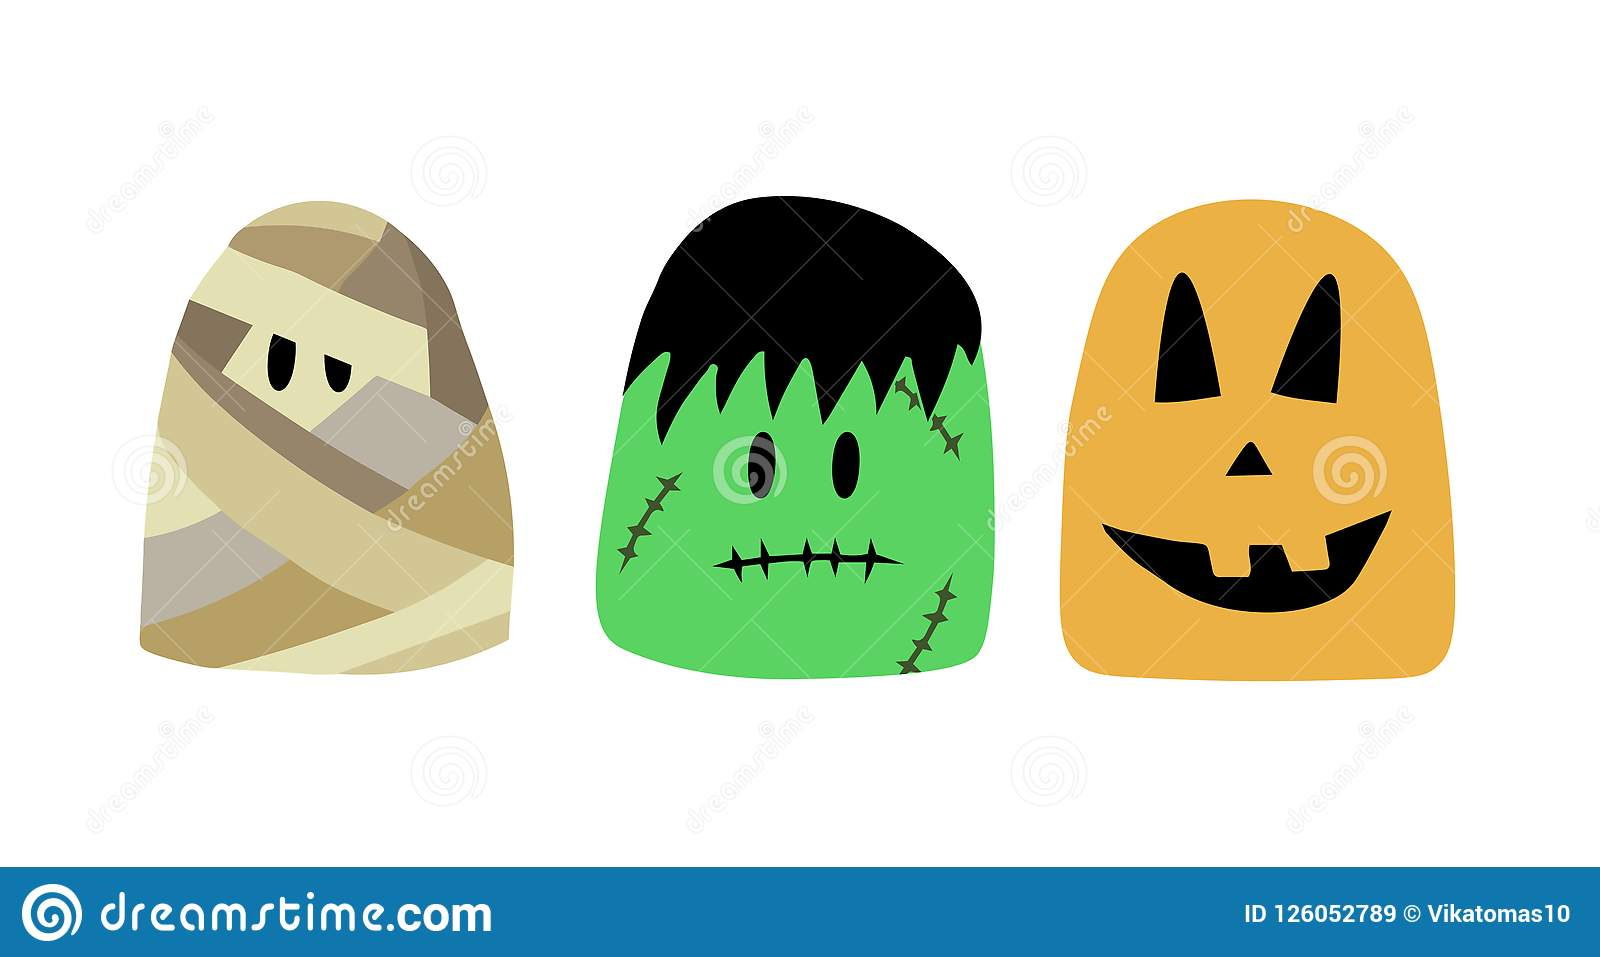 Halloween characters, Vector illustration mummy, frankenstein, pumpkin. cartoon characters for Halloween